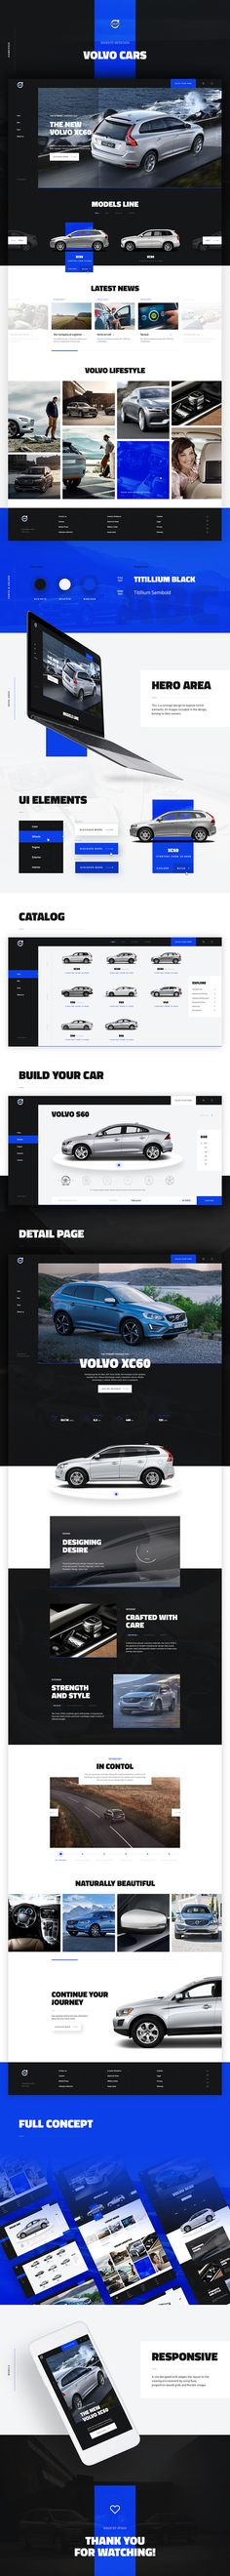 Website redesign concept for Volvo by Atwix.